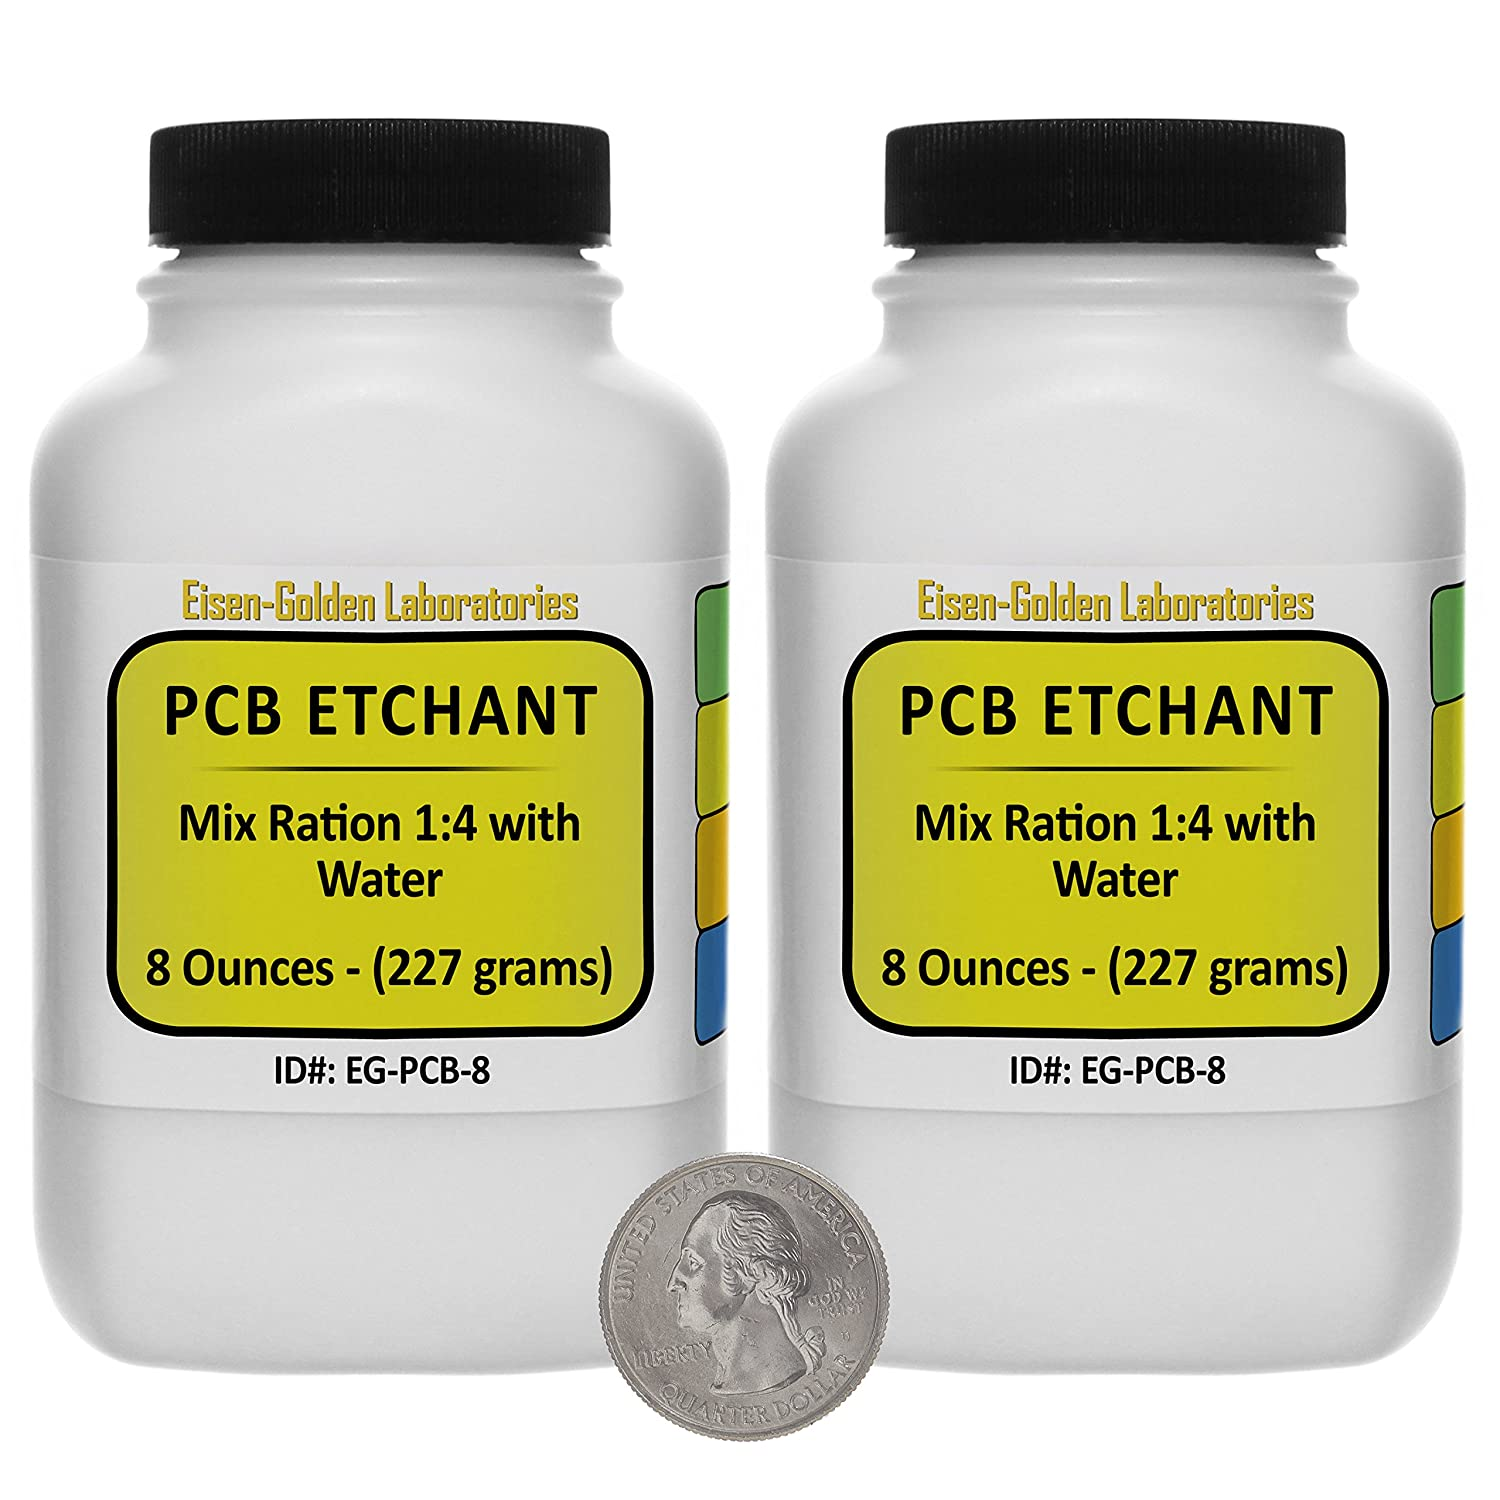 Printed Circuit Board Etchant [PCB] Dry Powder 1 Lb in Two Space-Saver Bottles USA Eisen-Golden Laboratories EG-PCB-16/2